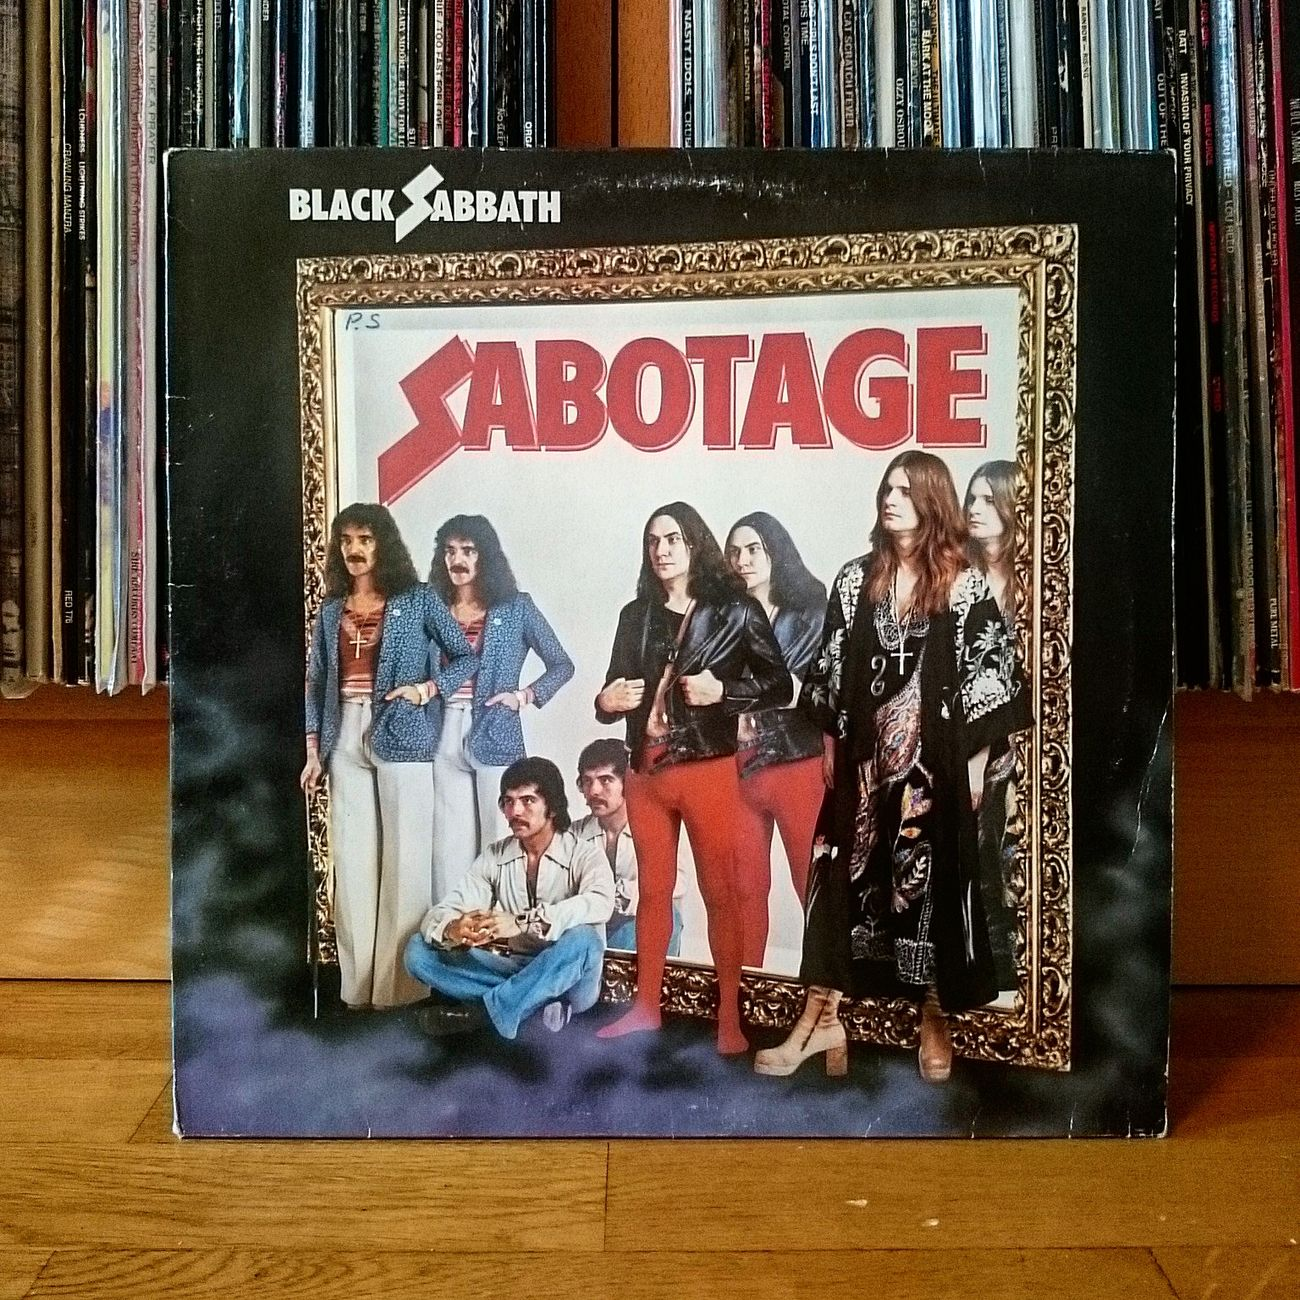 Some great music. Musiclover Vinyl Vinylcollector Blacksabbath Sabotage